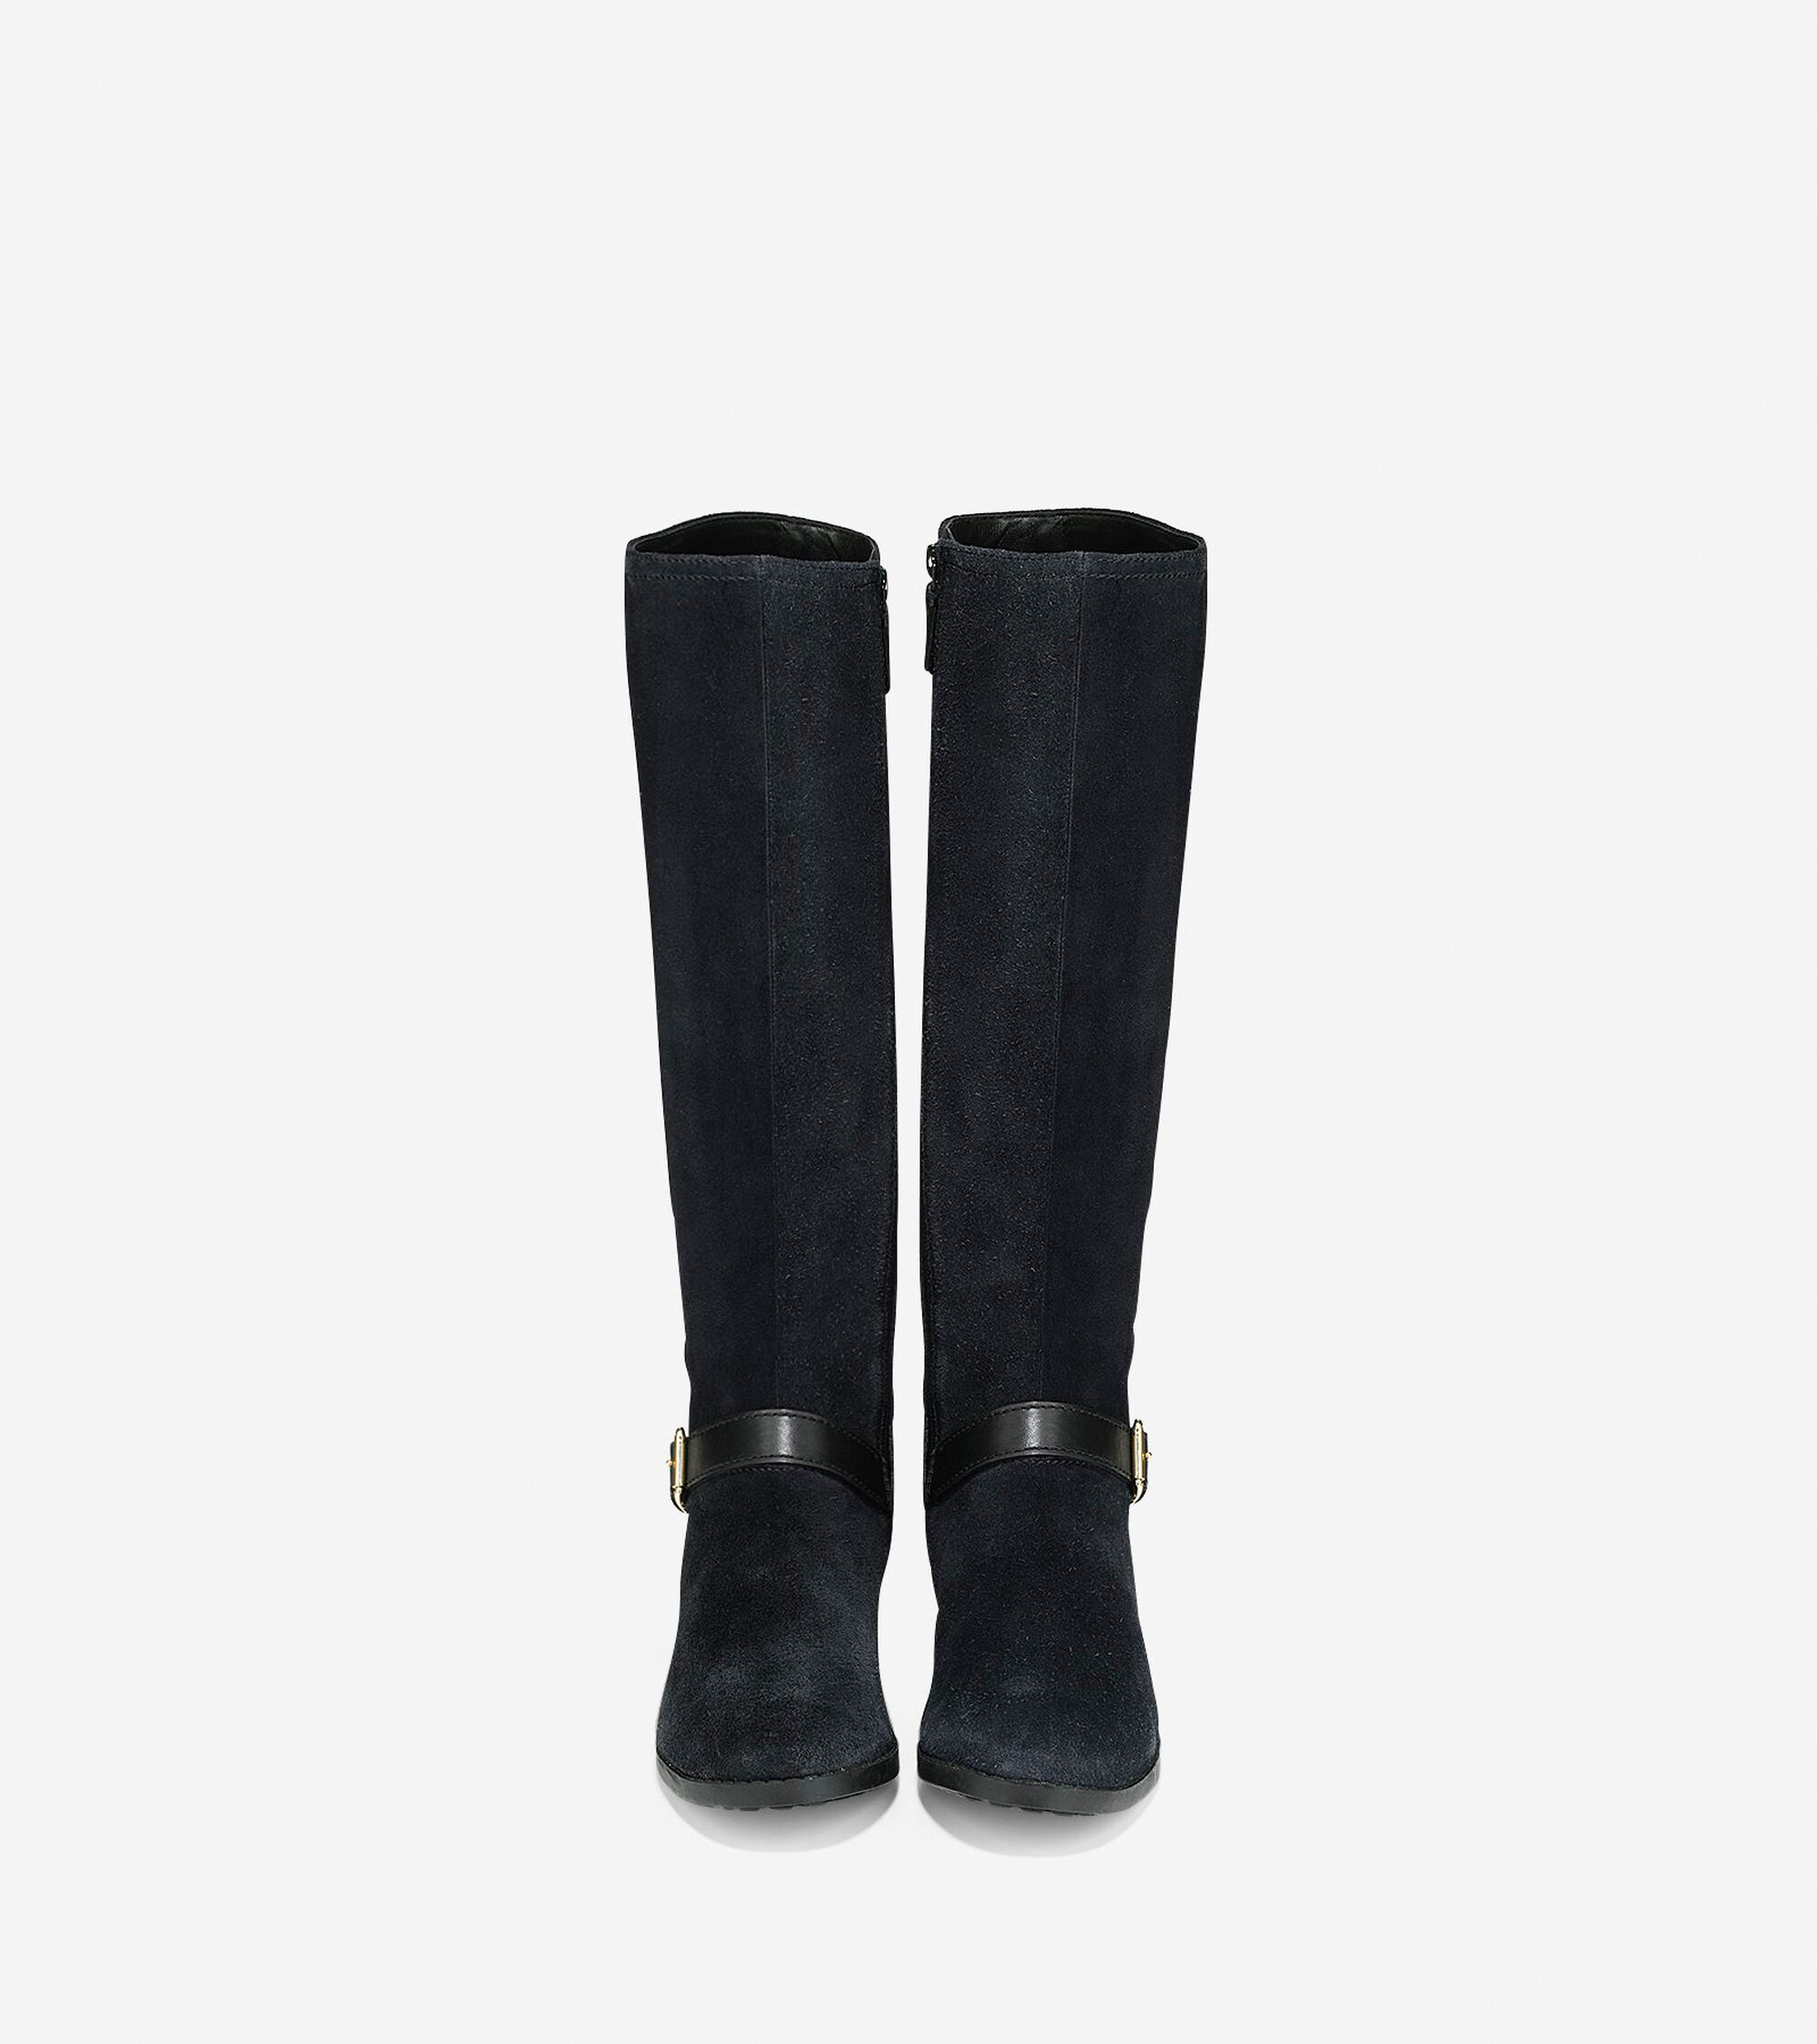 Marla Waterproof Tall Boots 30mm in Black | Cole Haan